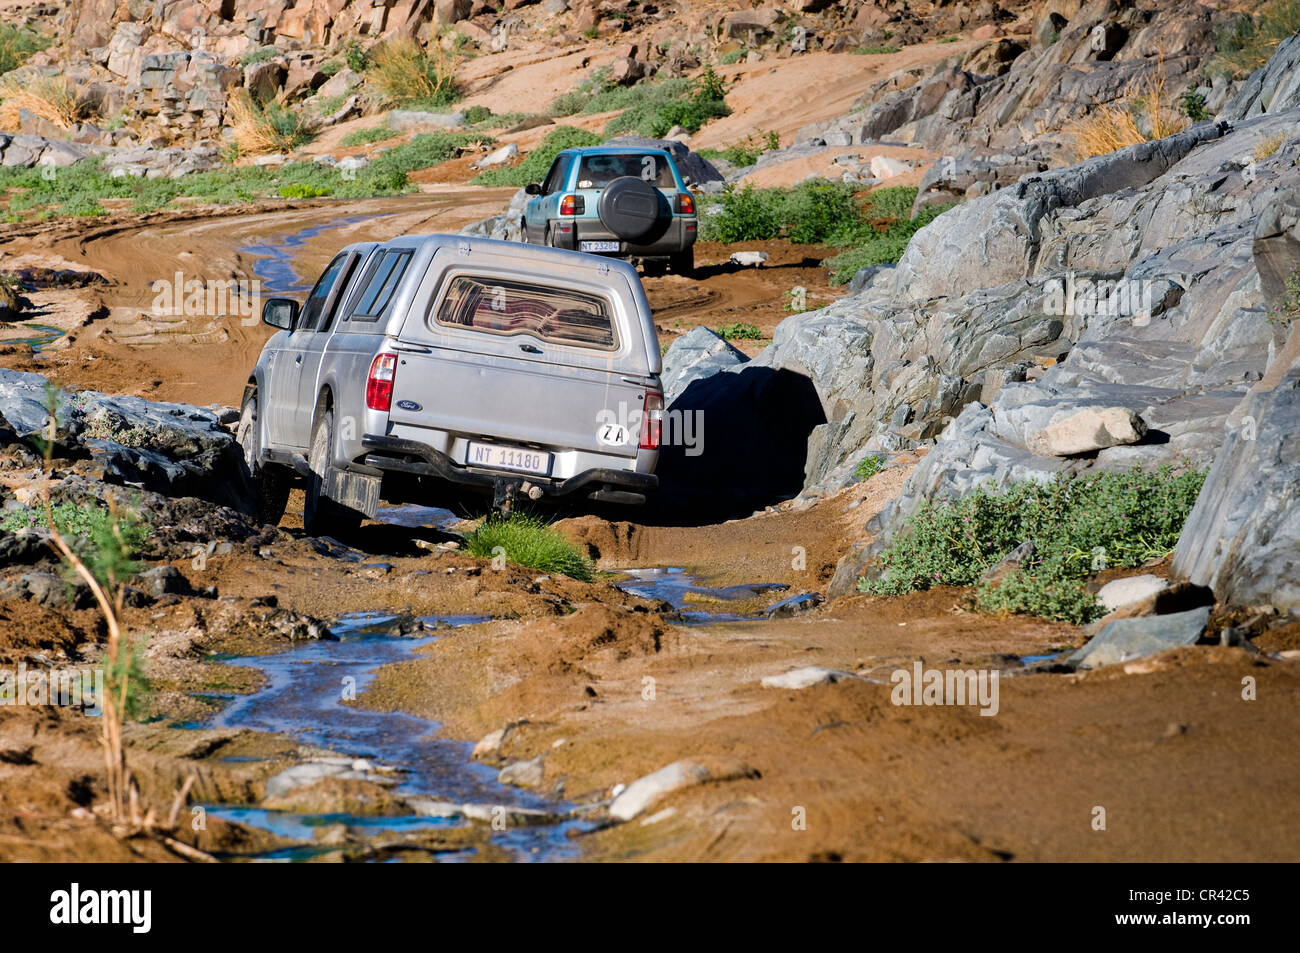 Car on a road, crossing a river, Richtersveld National Park, Northern Cape, South Africa, Africa - Stock Image